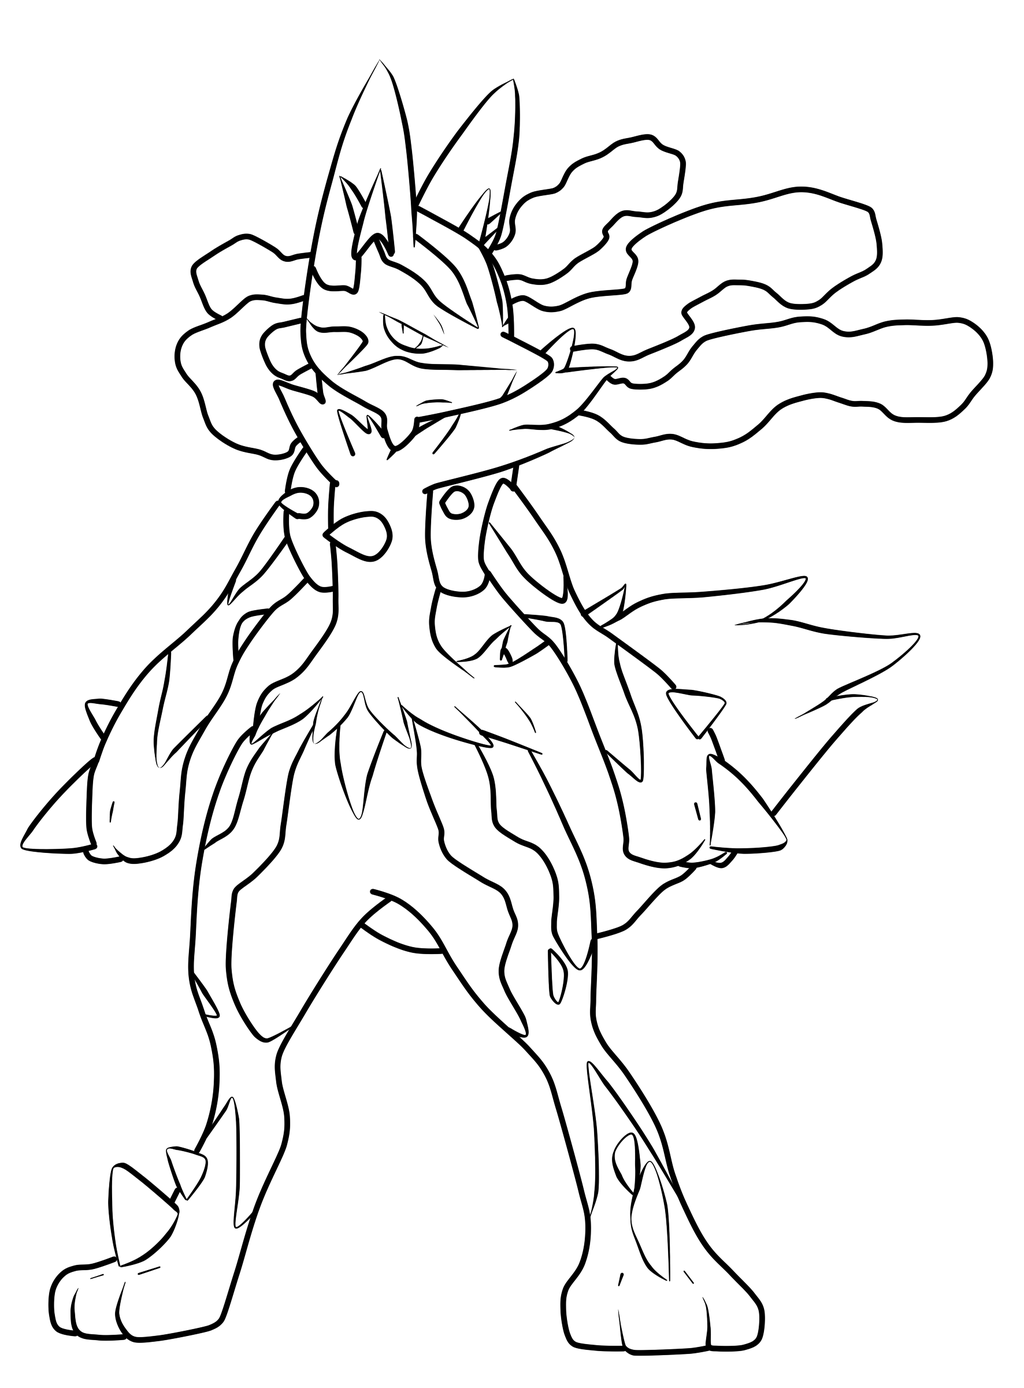 The Best Free Evolutions Drawing Images Download From 32 Free